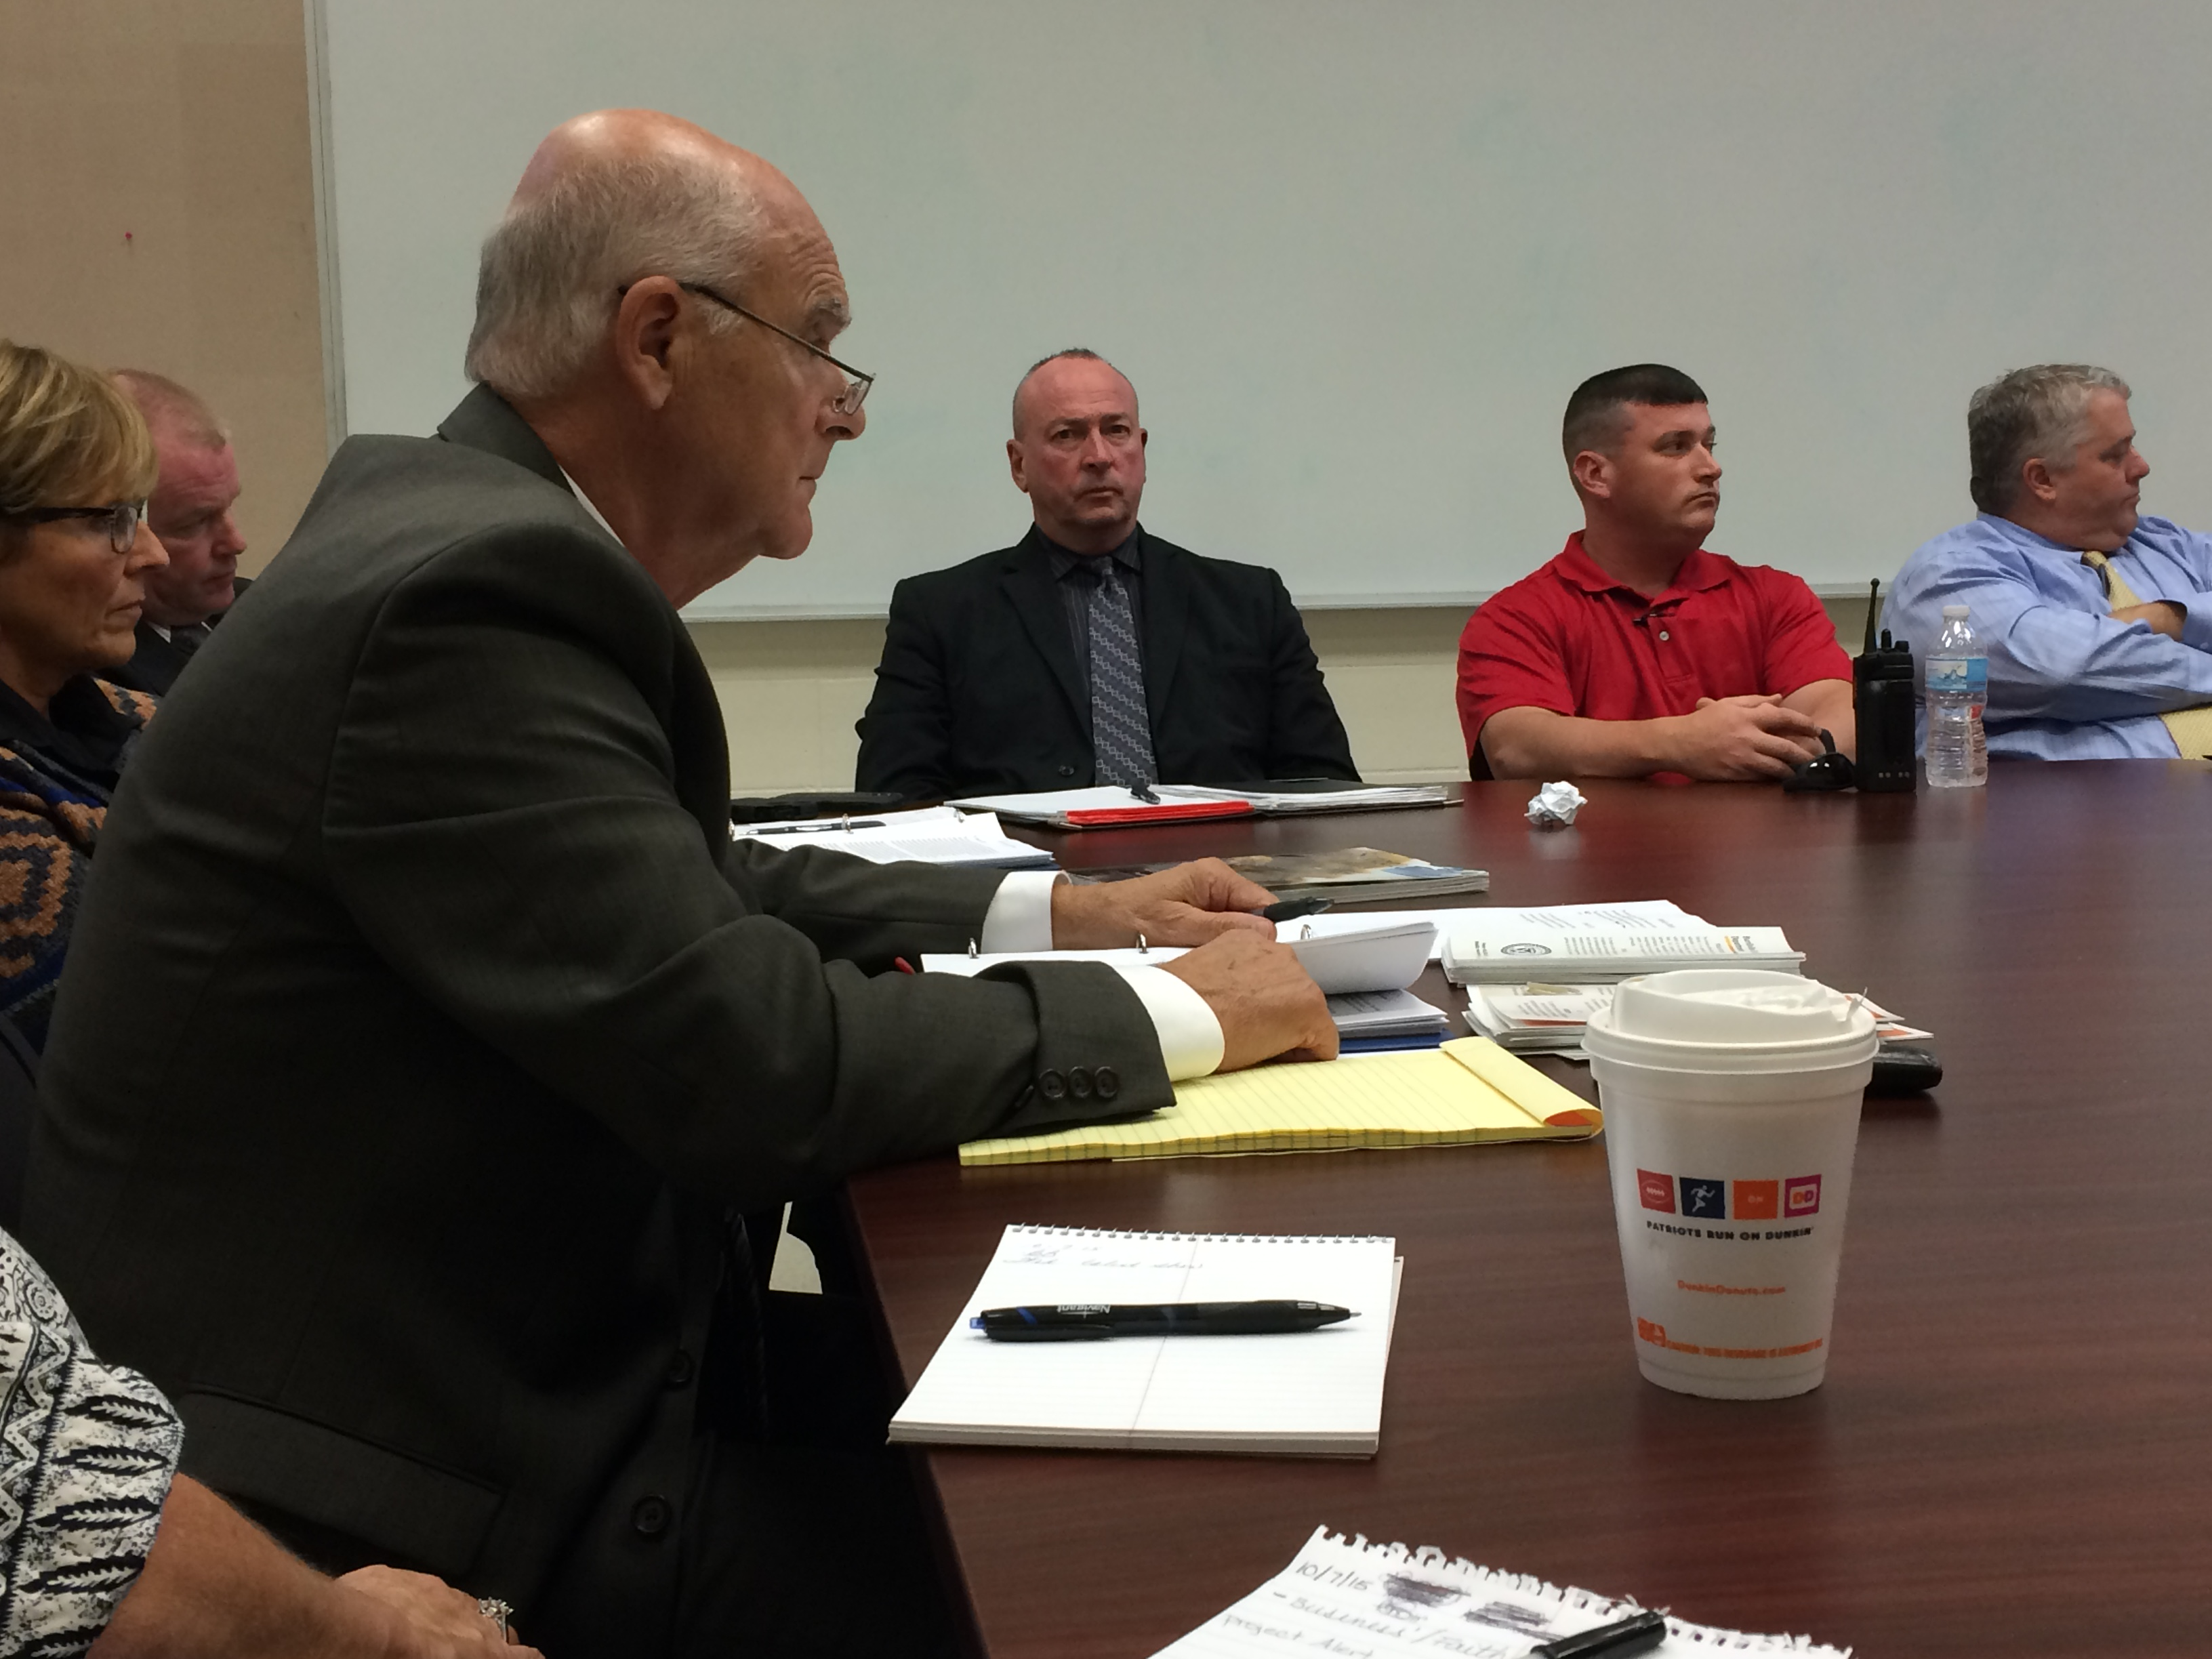 Burrillville Superintendent of Schools Dr. Frank Pallotta c-chairs a meeting of the Burrillville Prevention Action Coalition.